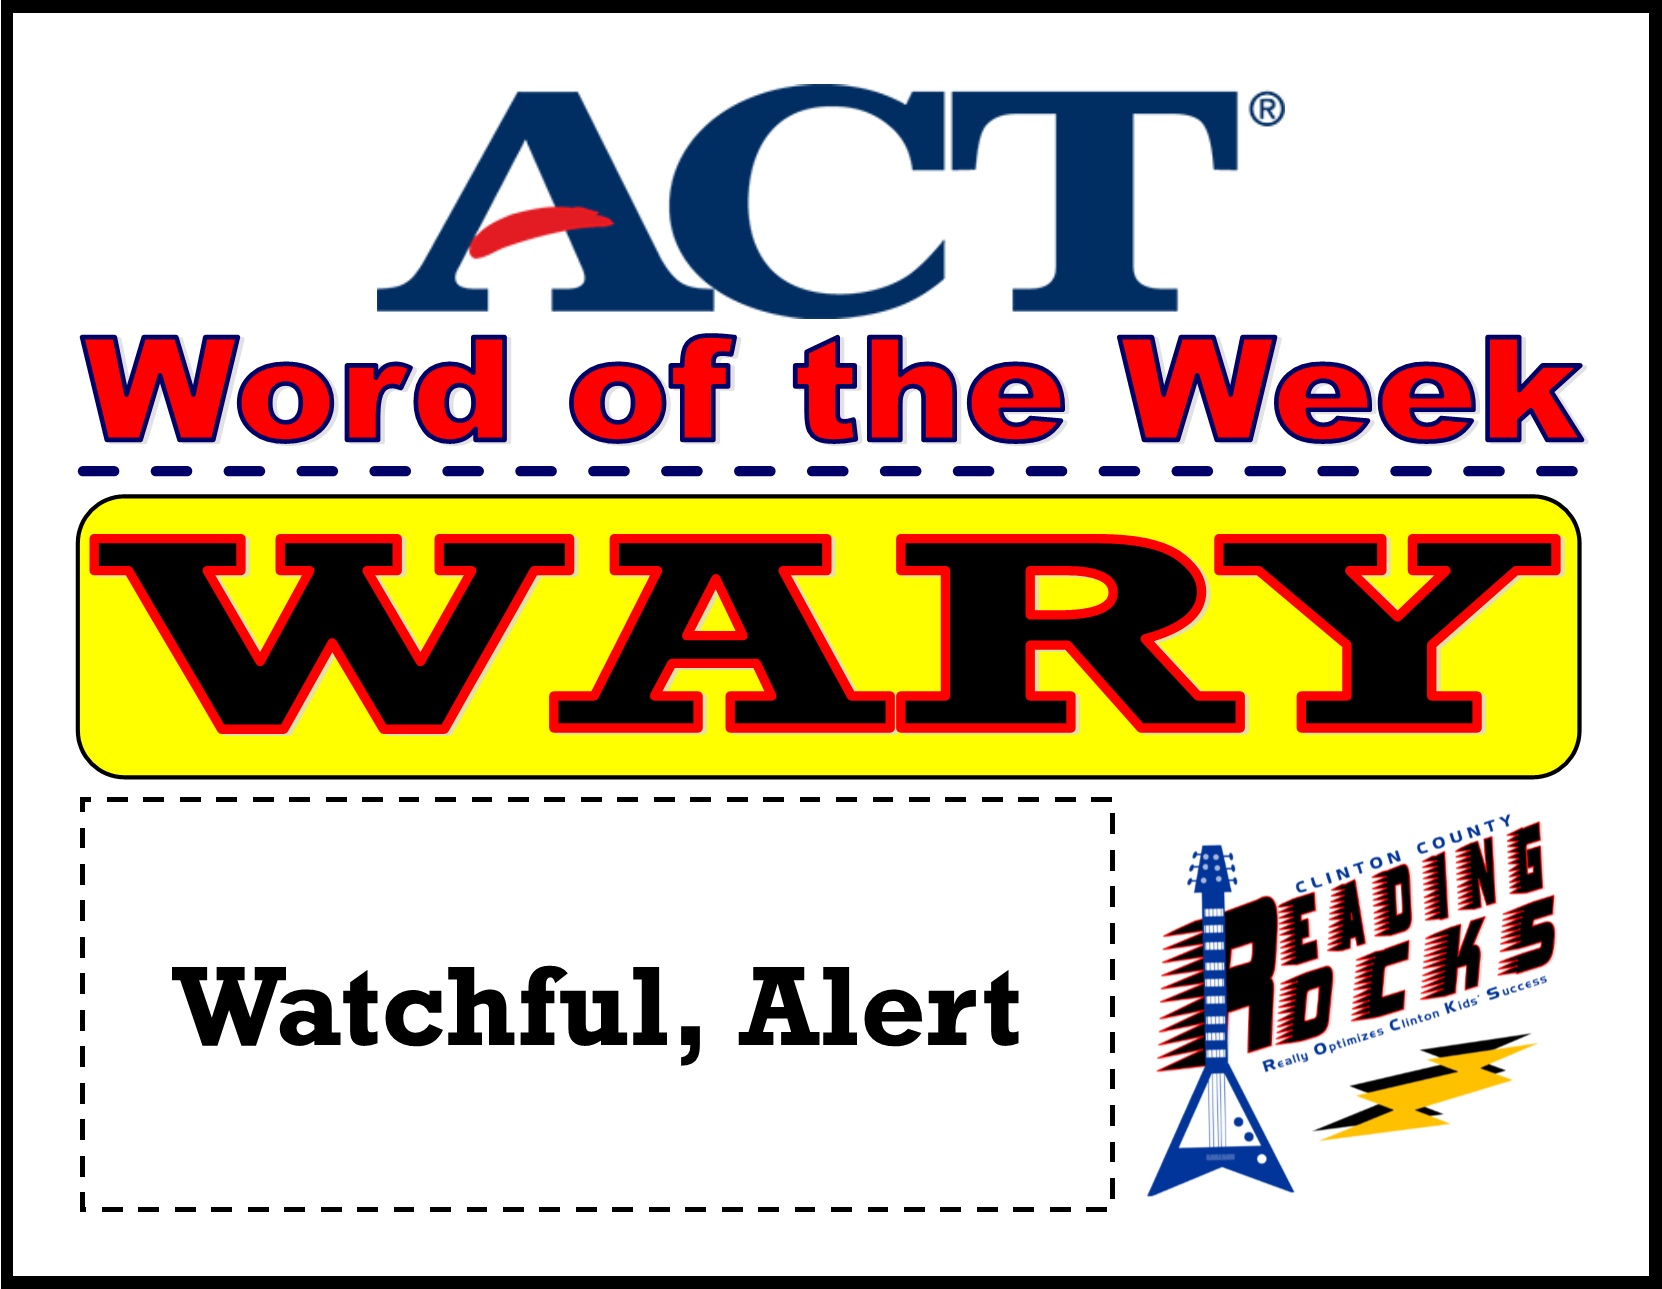 The CCHS Reading ROCKS ACT Word of the Week is - WARY!